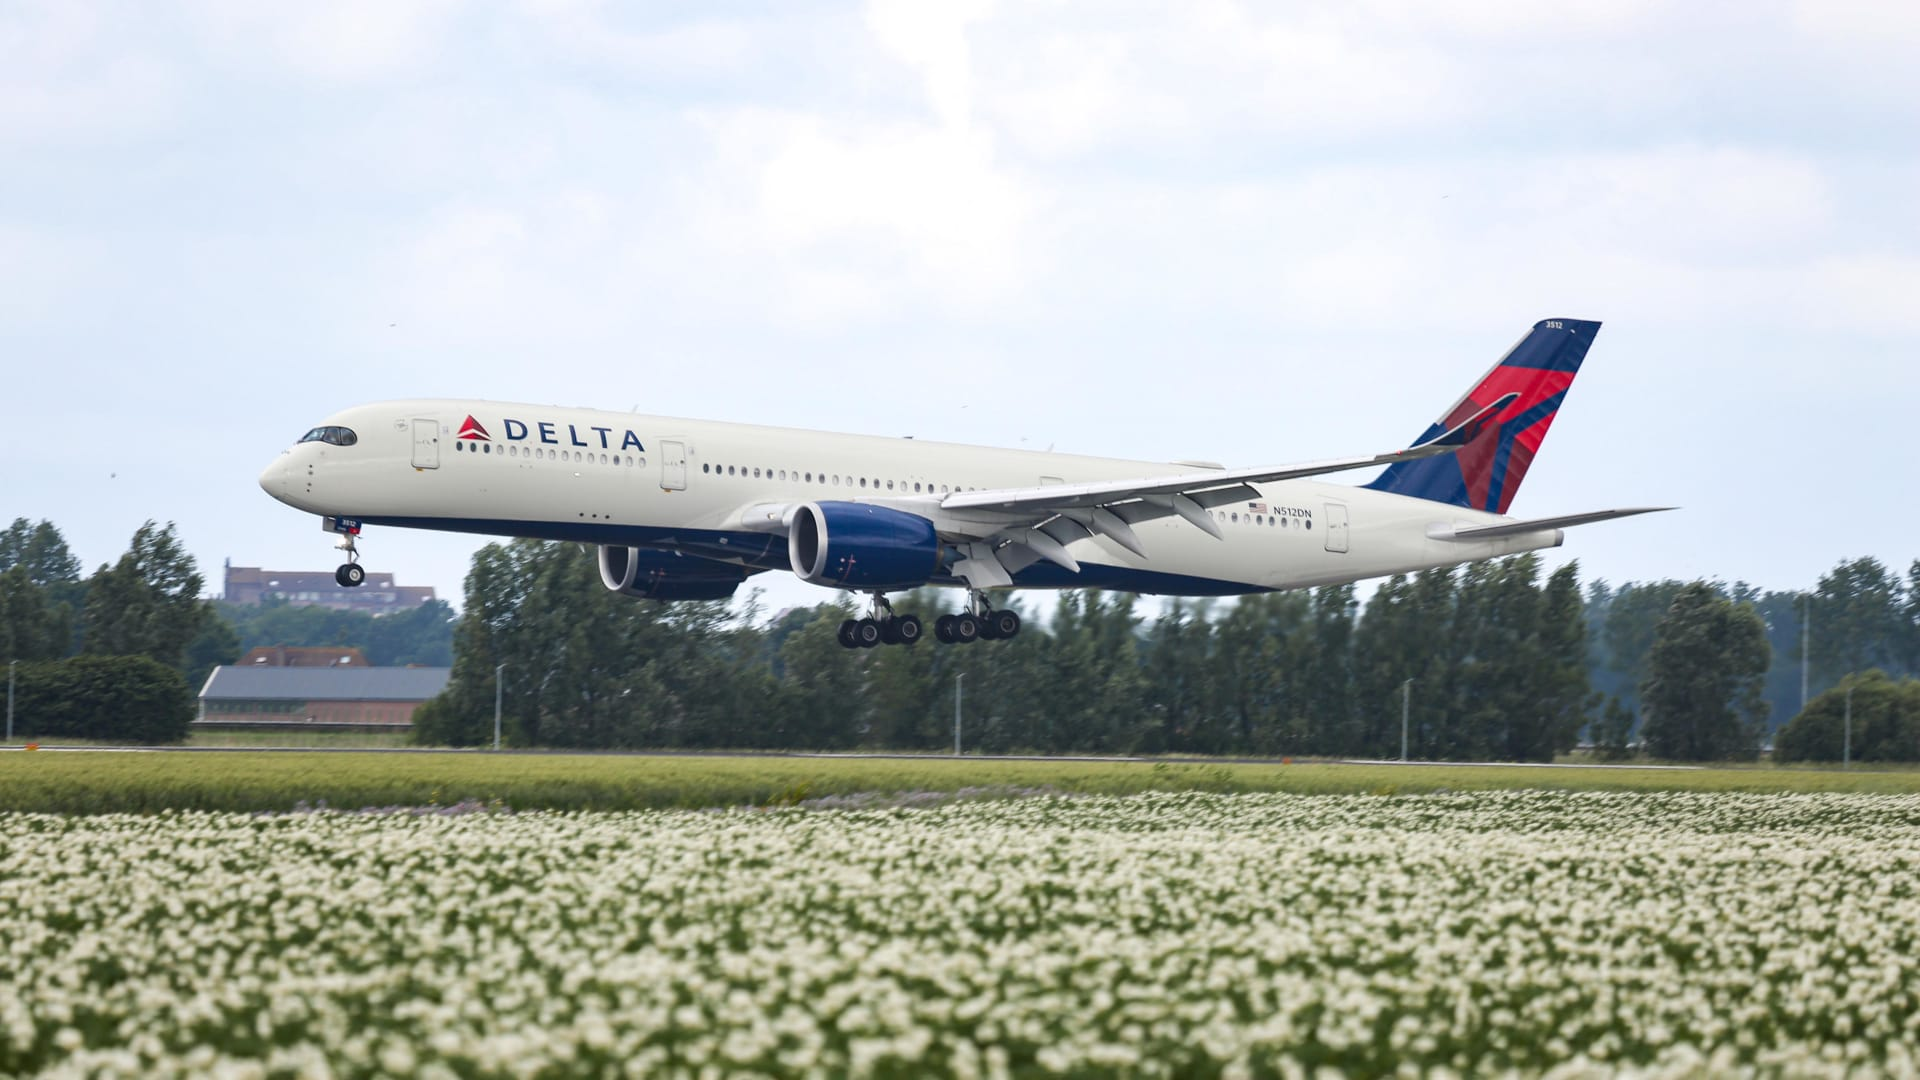 I Flew on Delta to New York City During the Pandemic. I Didn't Expect This